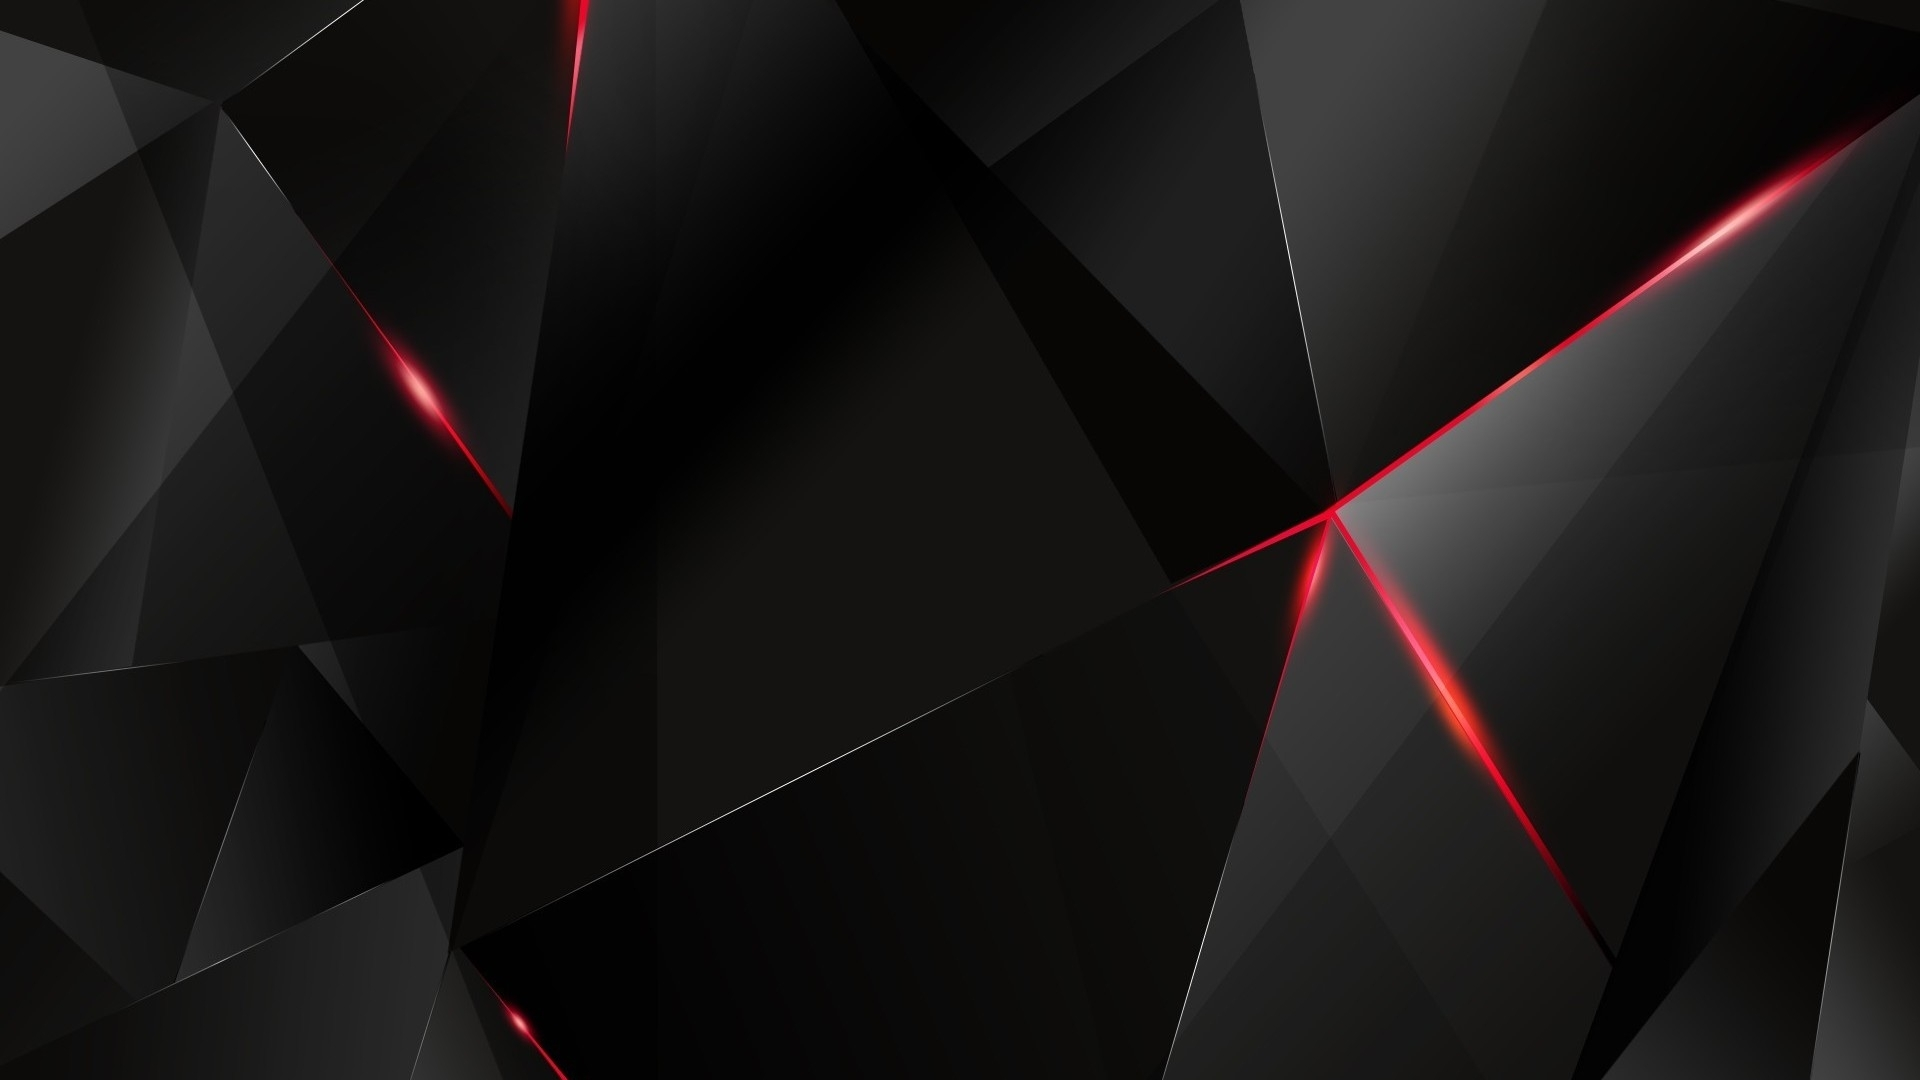 10 New 1920X1080 Red And Black Wallpaper FULL HD 1080p For PC Background 2018 Free Download